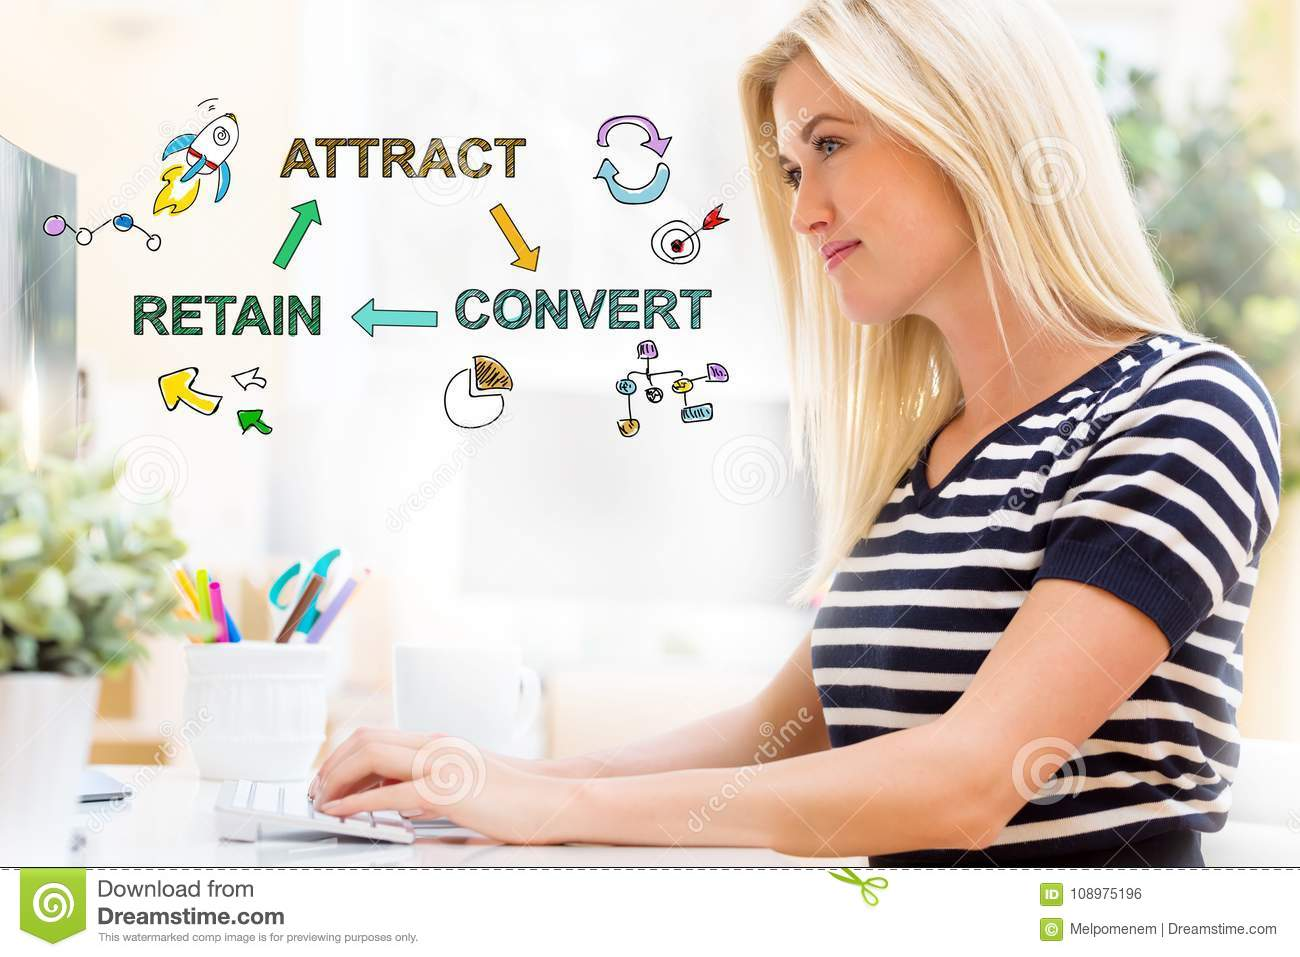 Attract Convert Retain with happy young woman in front of the computer